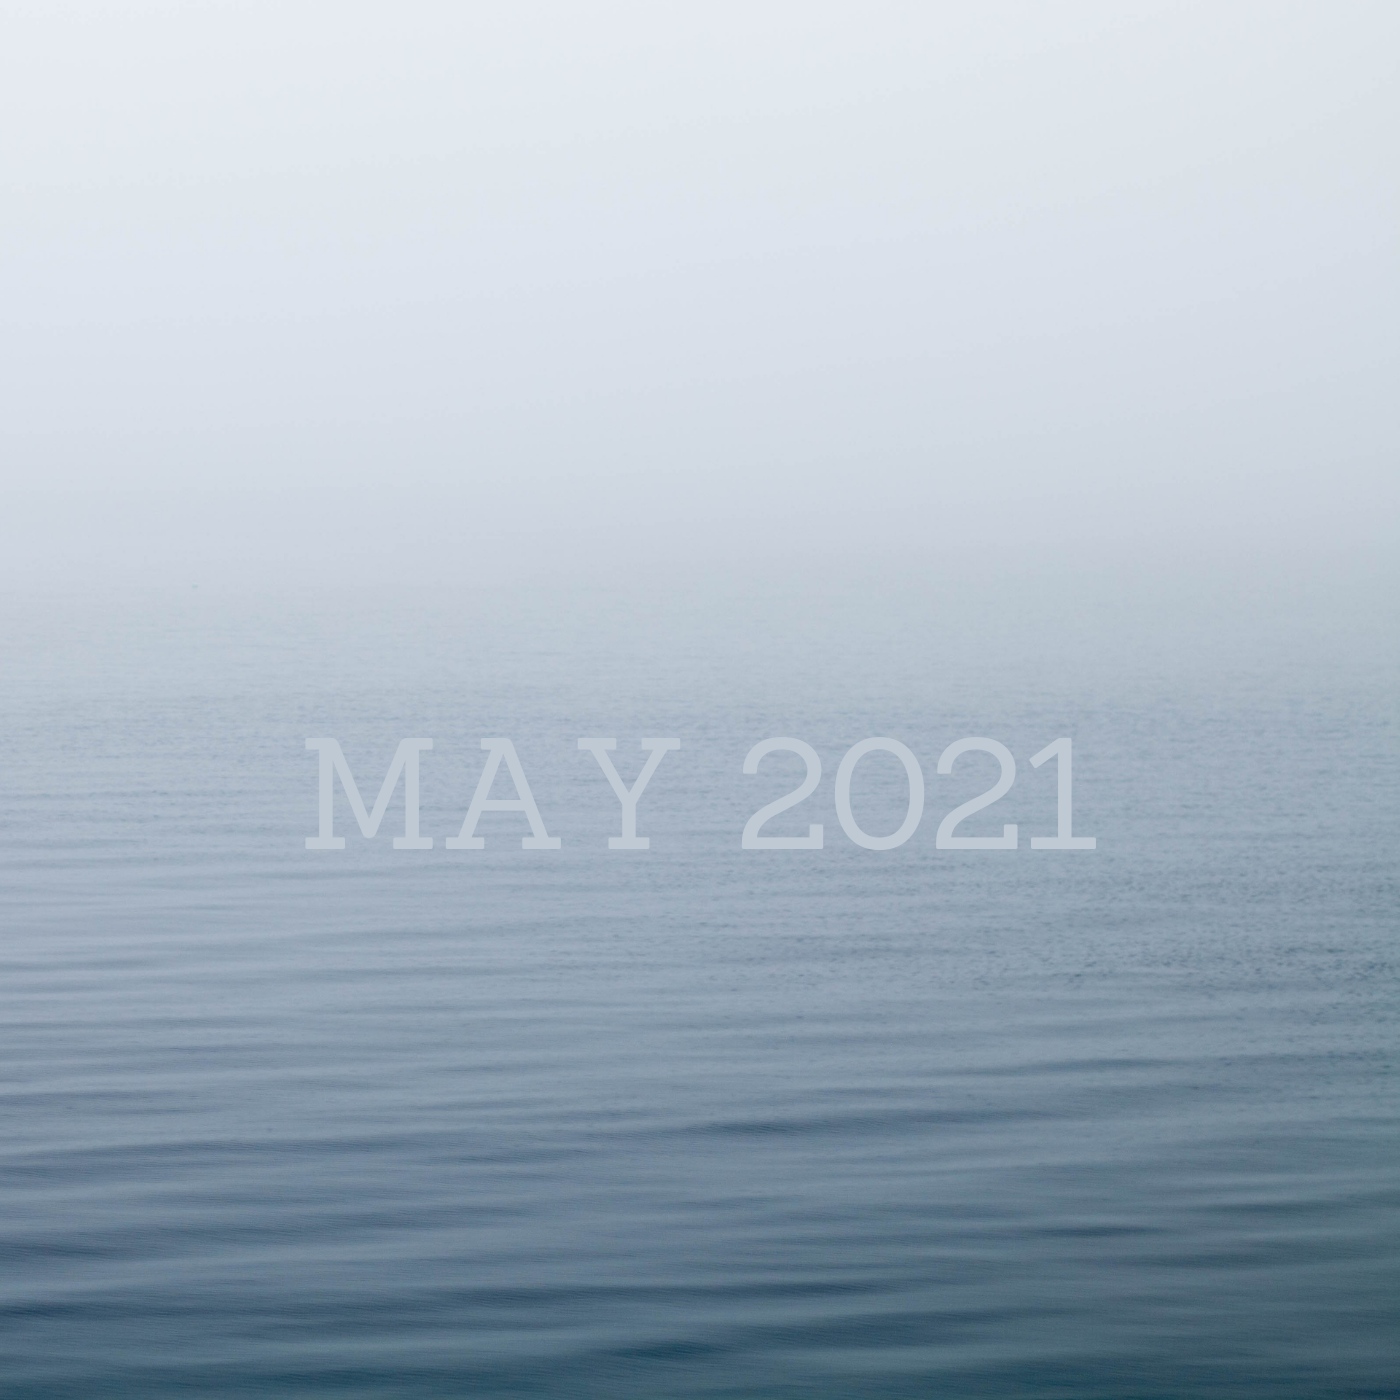 a square image of gently rippling water in blue and gray tones reading april 2021 in the center